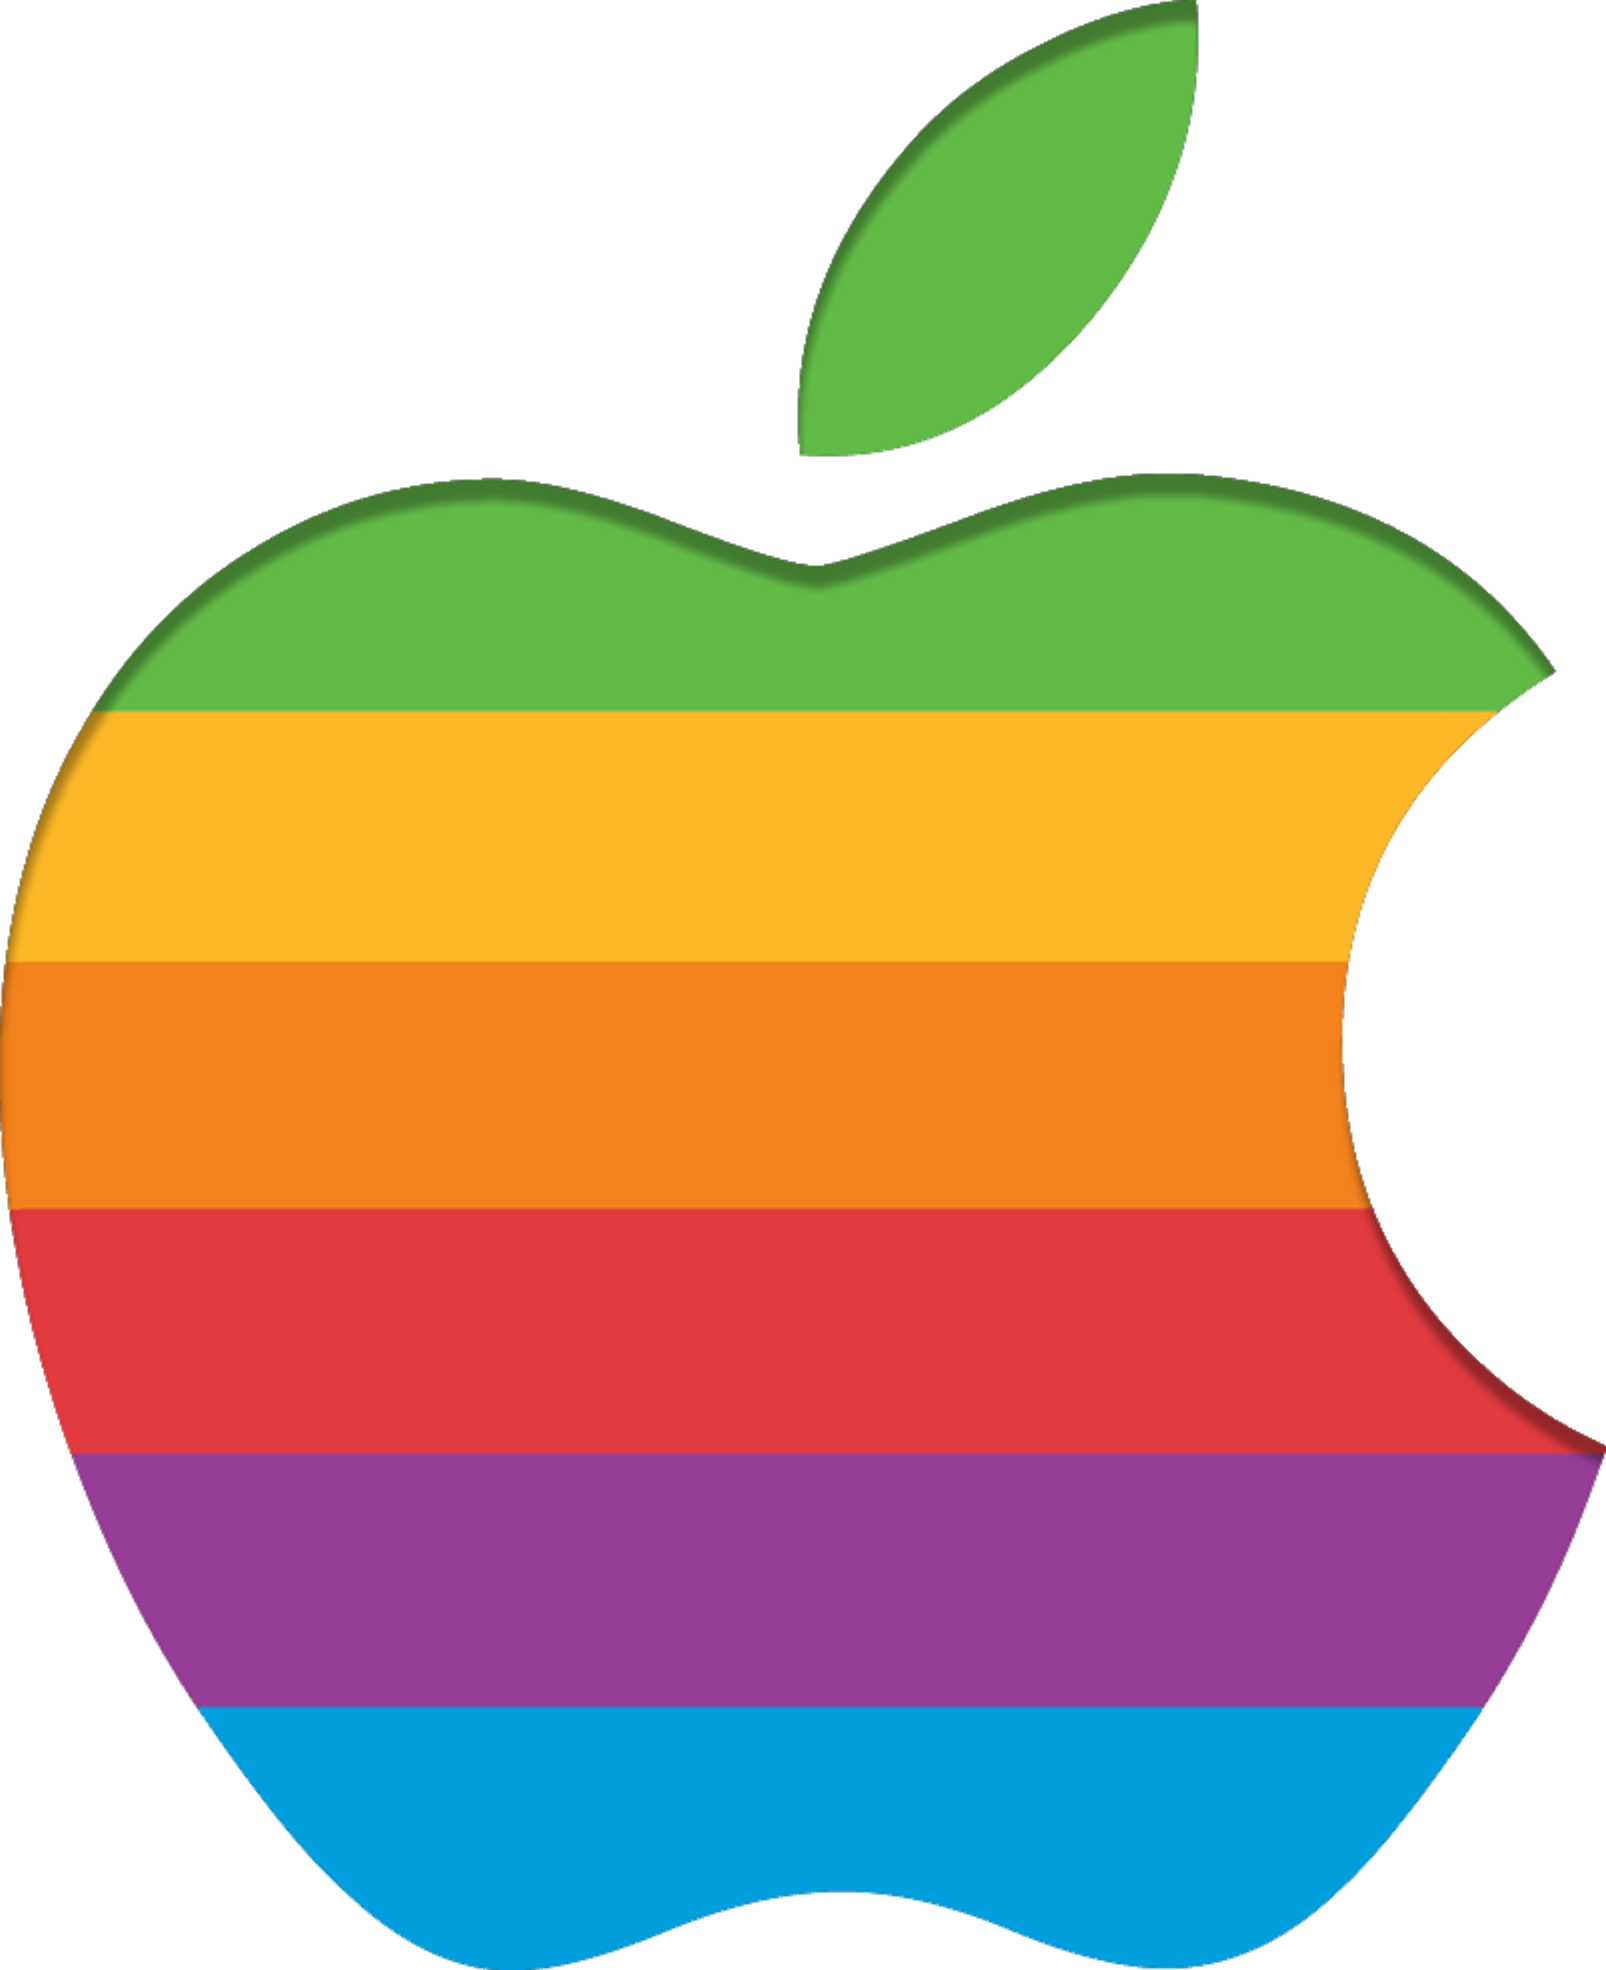 Image black apple logo. Worm clipart transparent background